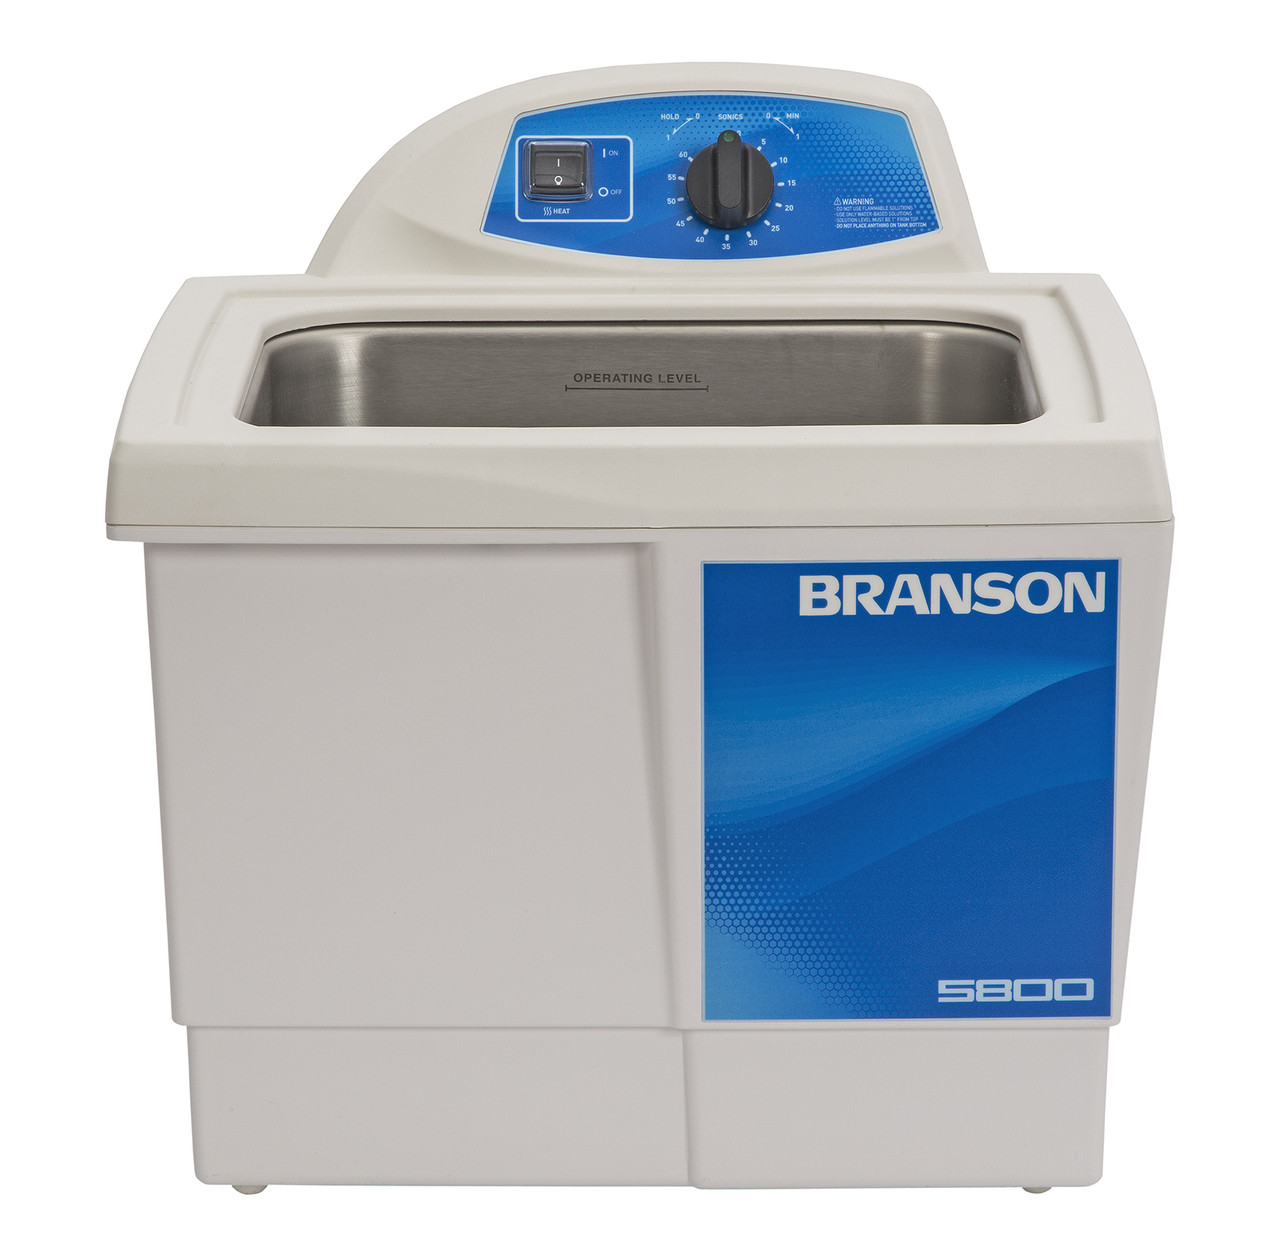 Branson M5800H Ultrasonic Cleaner